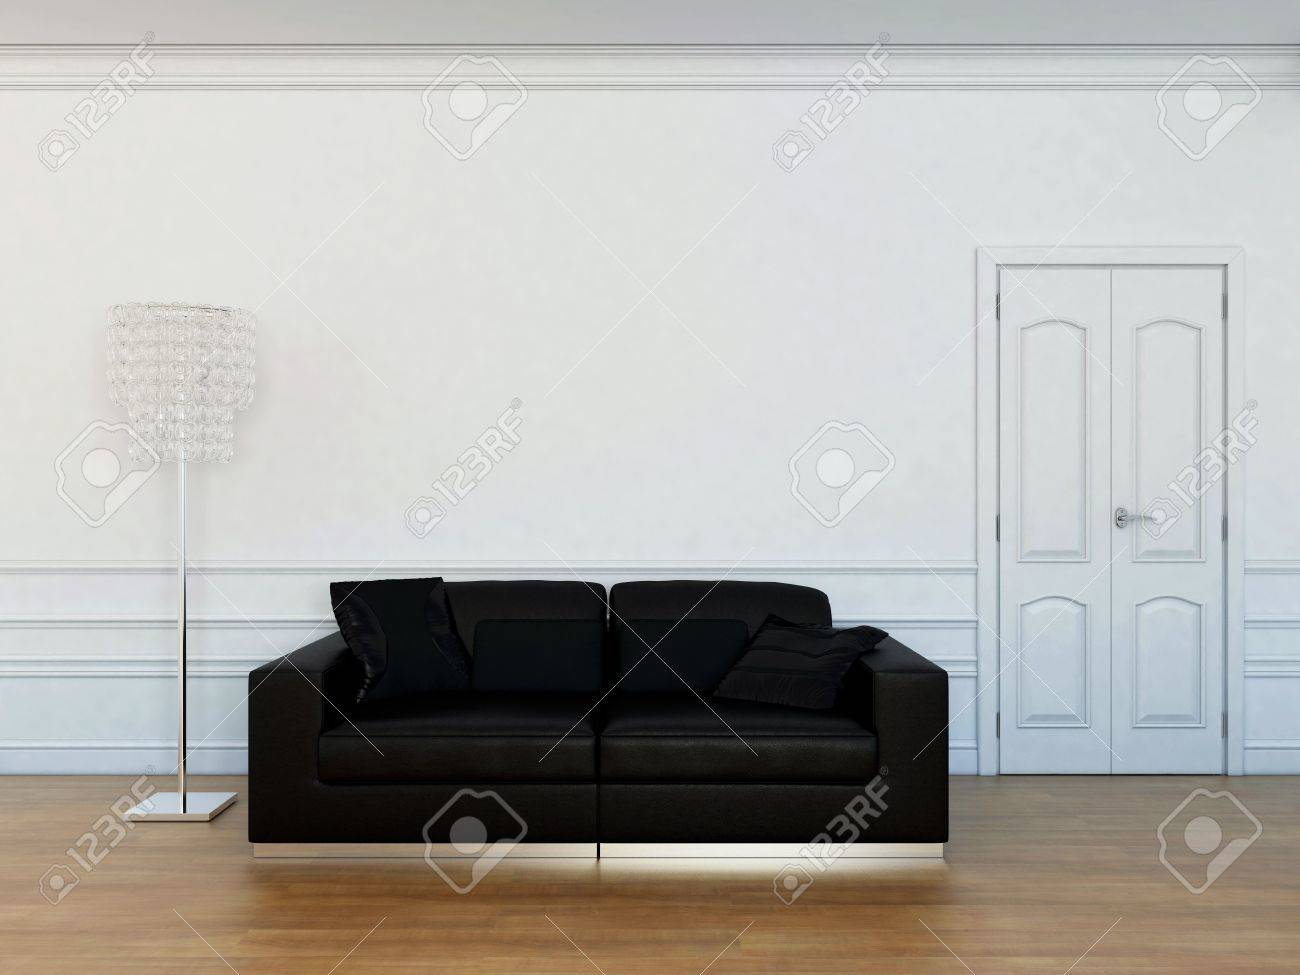 furniture in the living room Stock Photo - 12763334